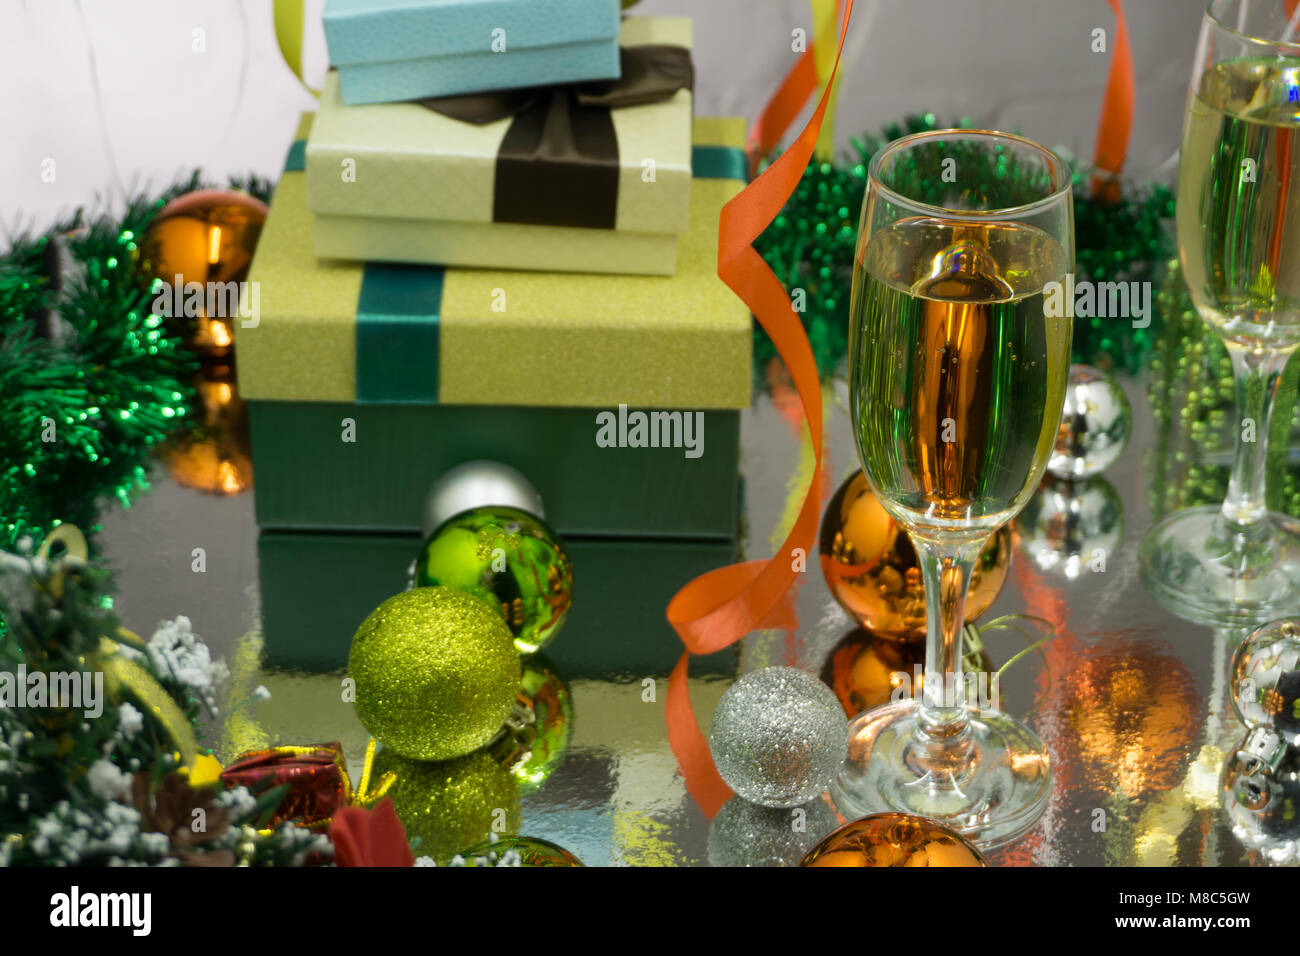 Glasses Champagne Christmas Gifts On Stock Photos & Glasses ...